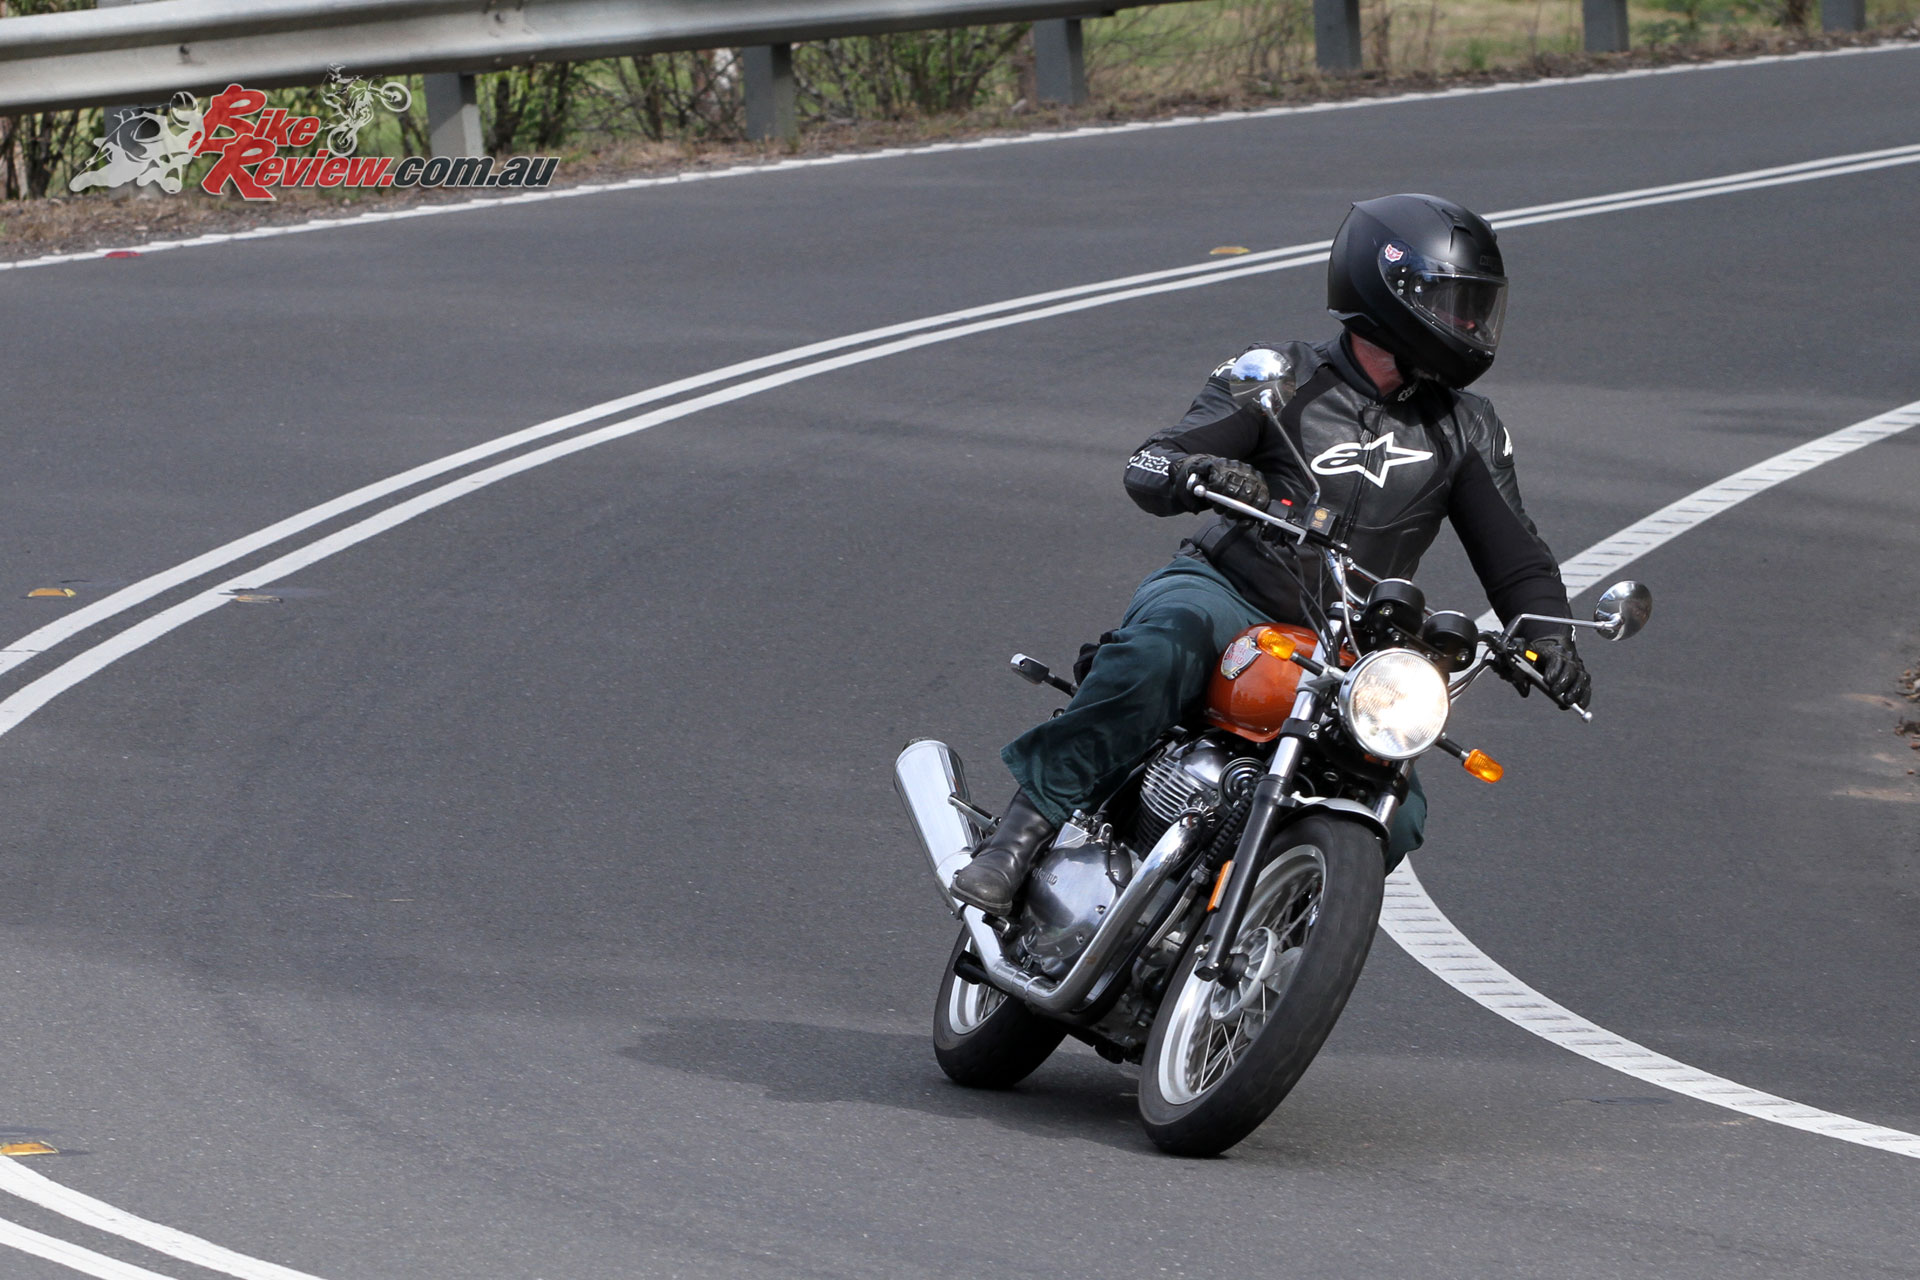 Sean testing Jeff's Interceptor 650